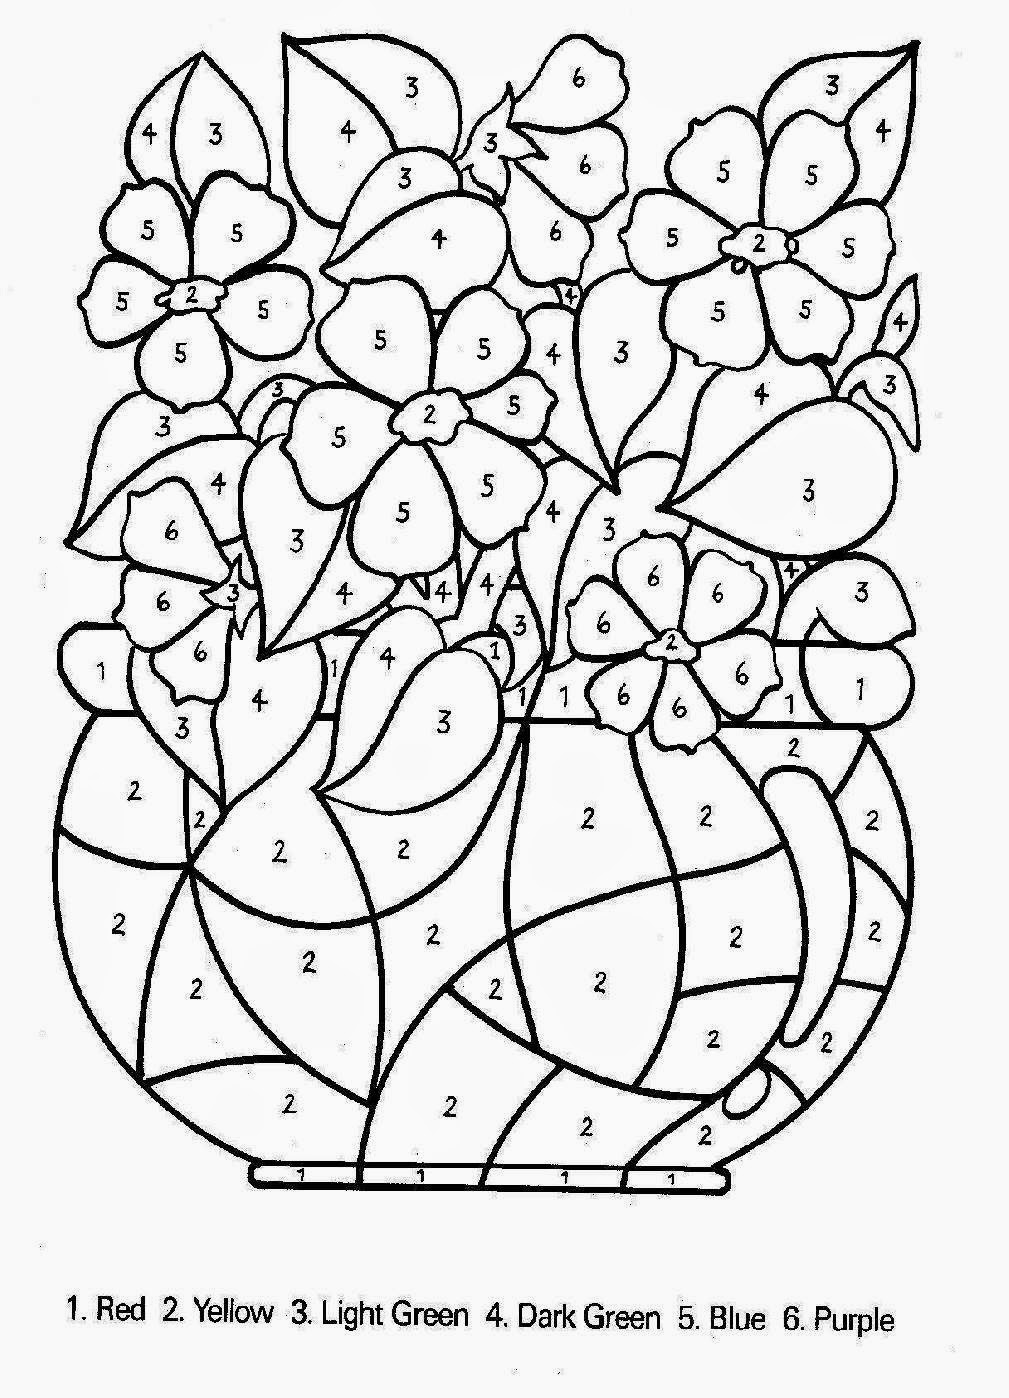 printable number coloring pages - number coloring sheets free coloring sheet